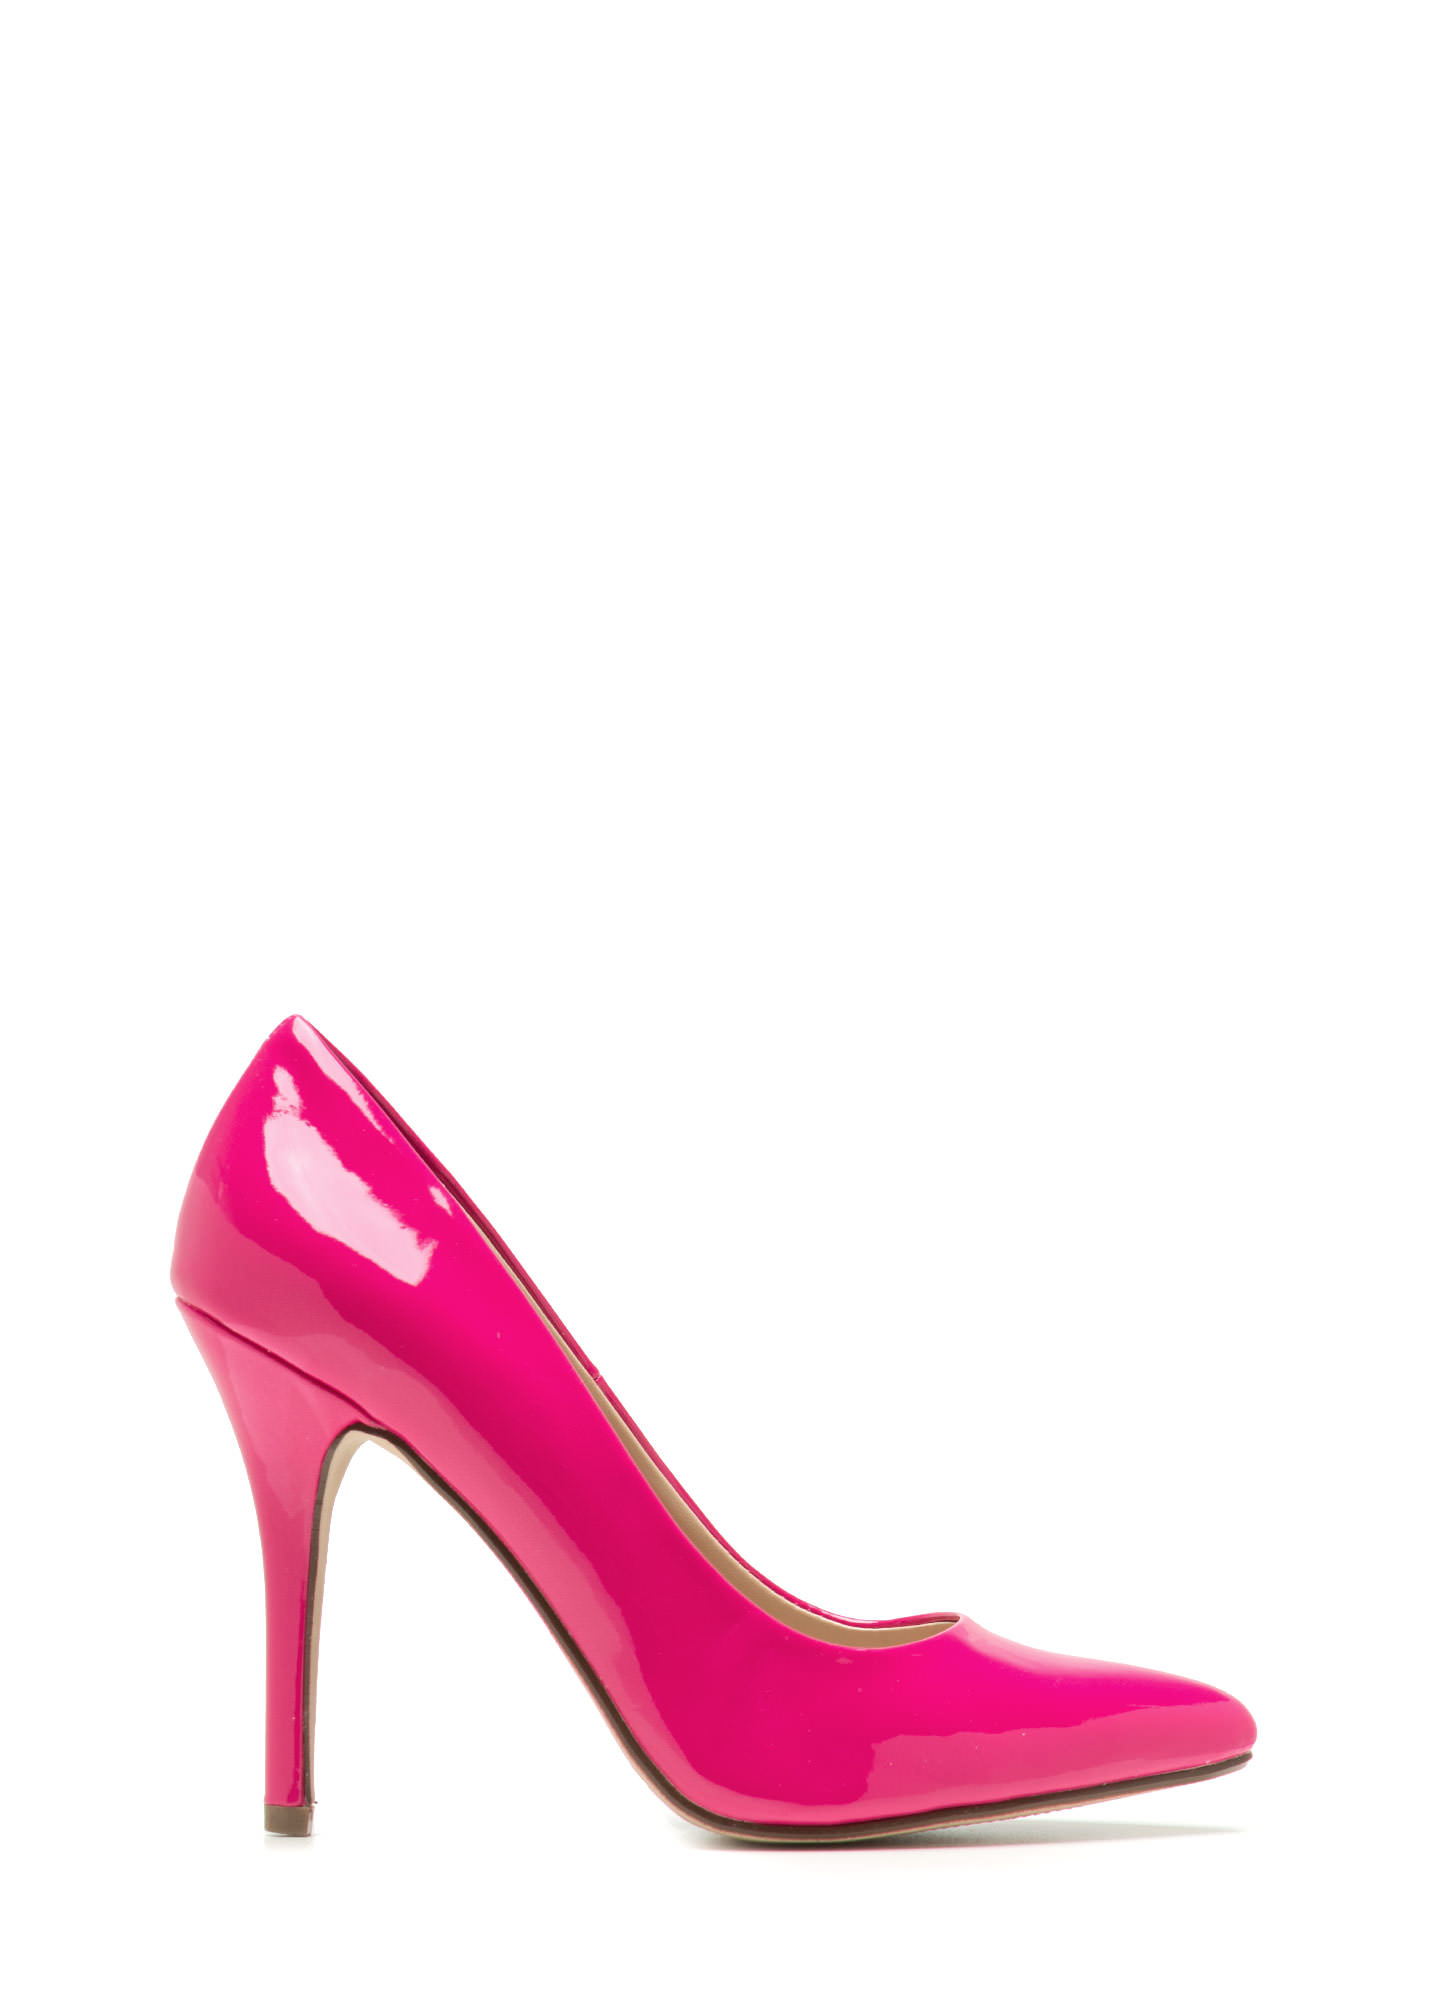 So Refined Pointy Faux Patent Pumps RED HOTPINK - GoJane.com